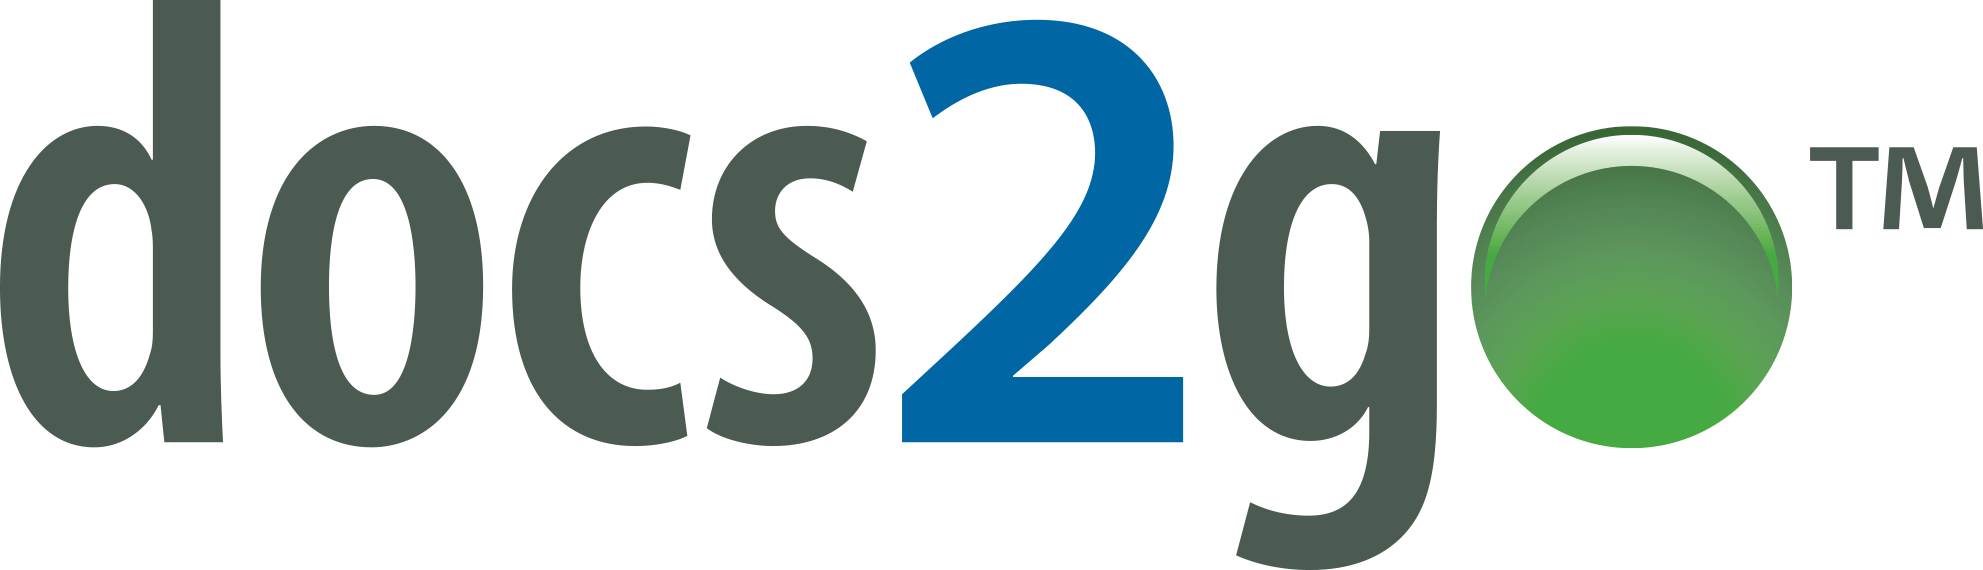 Logo for the docs2go document management product